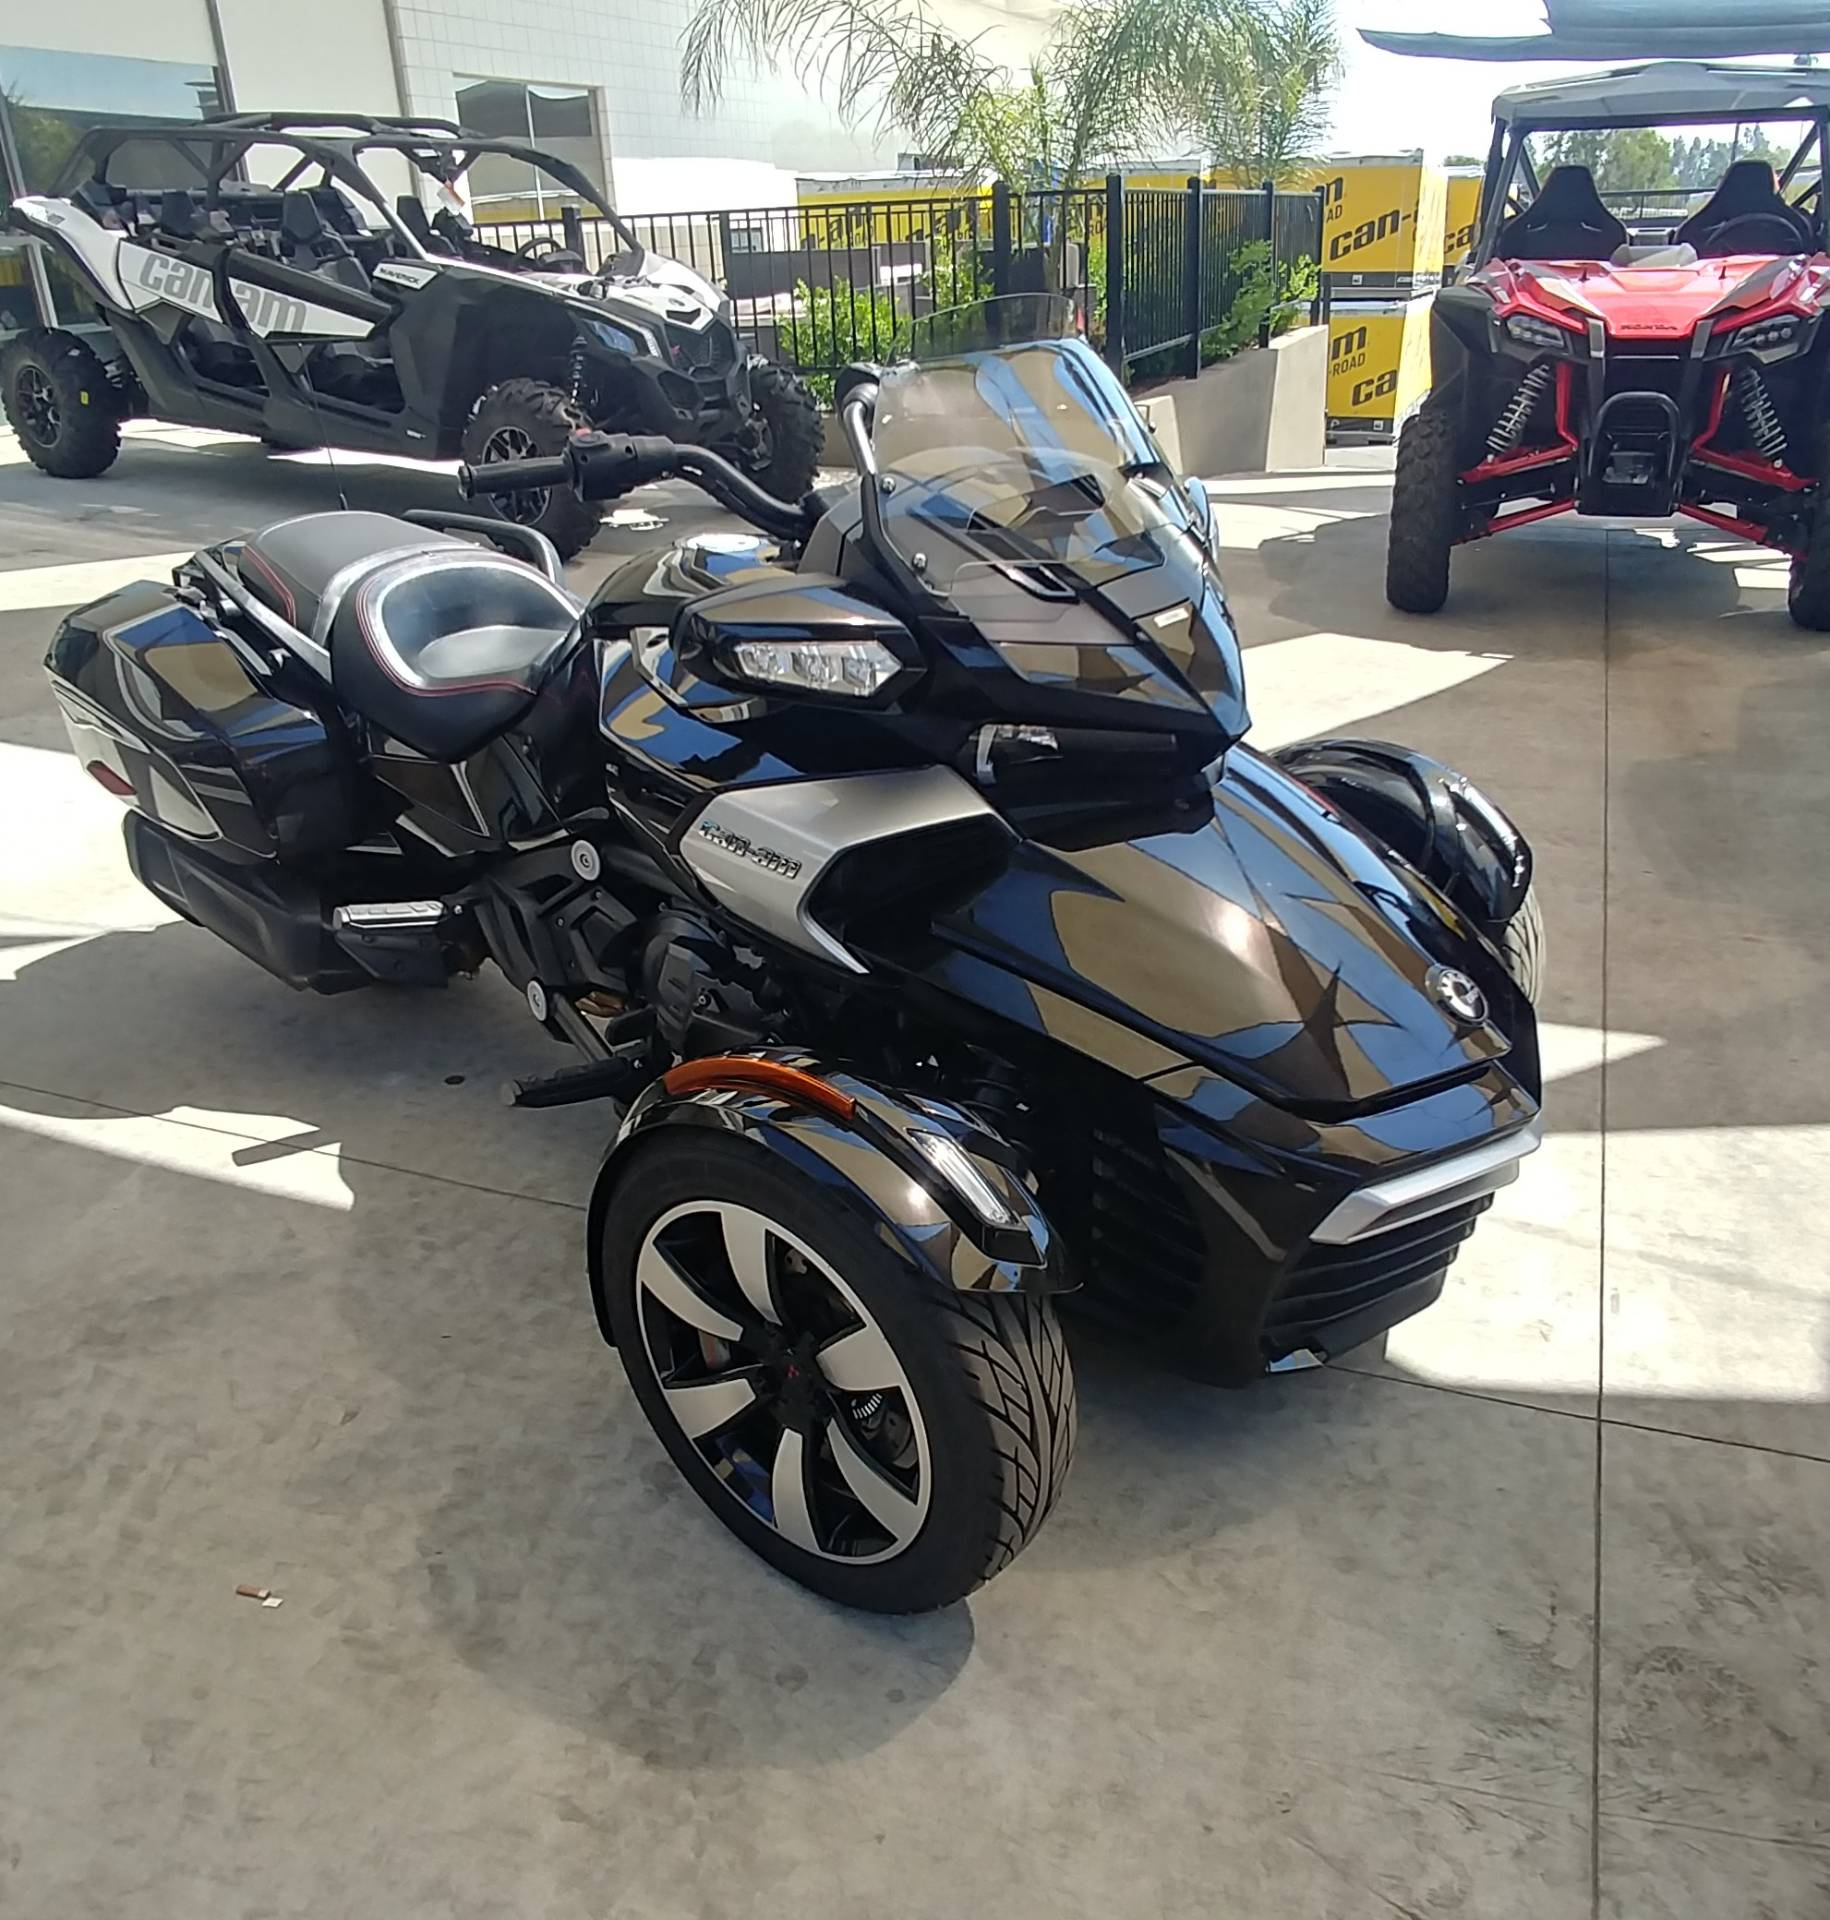 2016 Can-Am Spyder F3-T SE6 w/ Audio System in Ontario, California - Photo 3